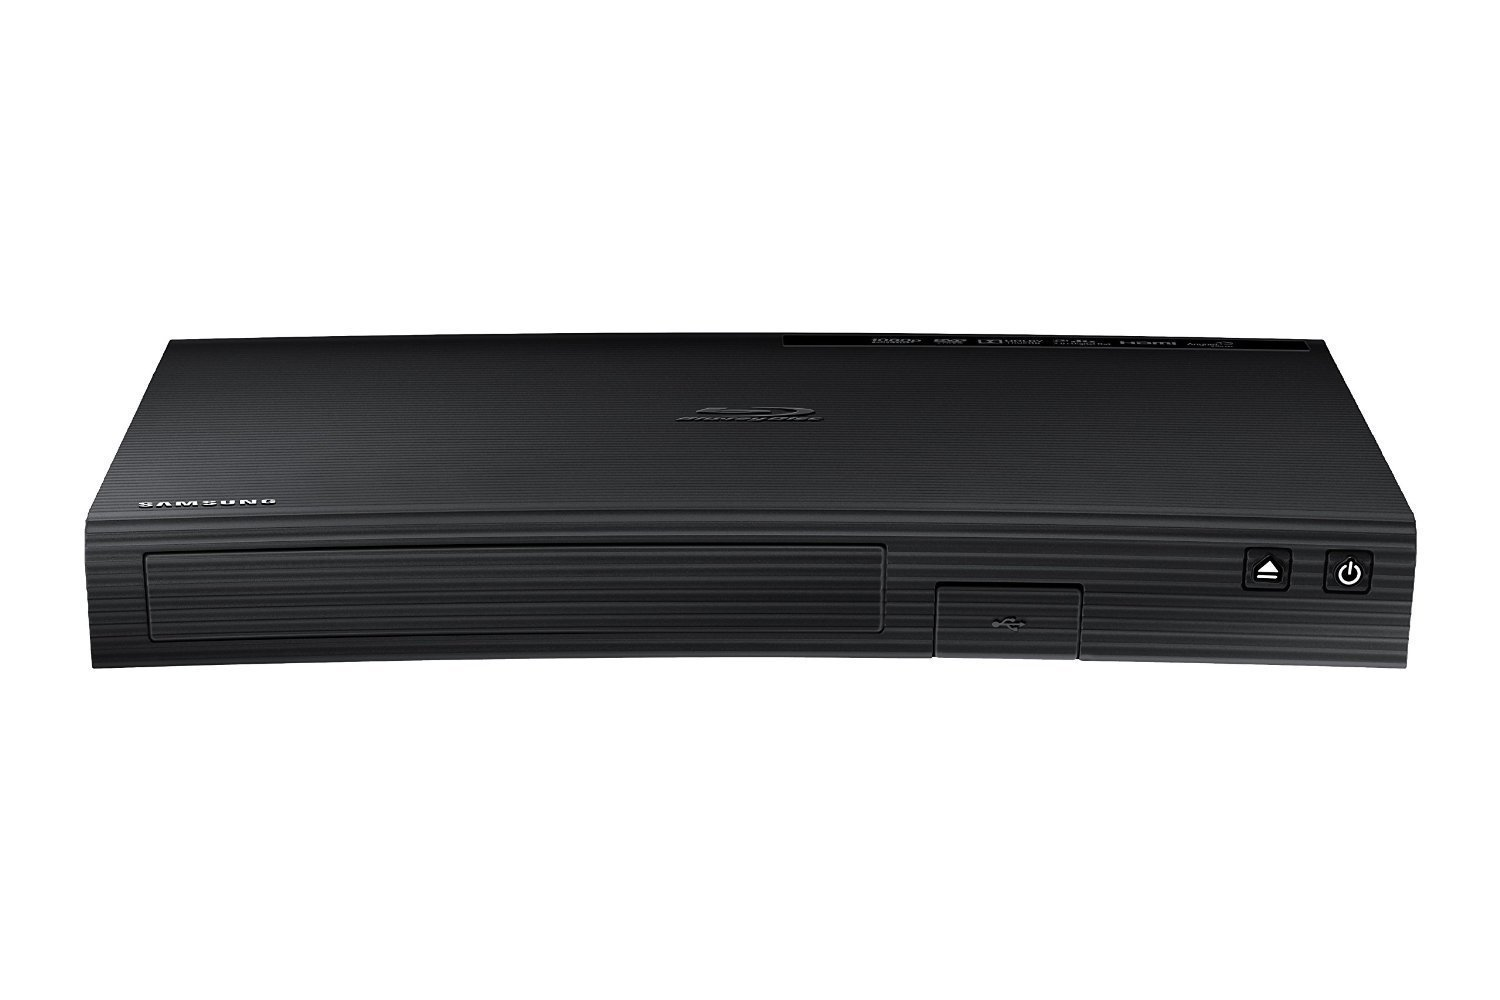 Samsung BD-J5100 Curved Blu-Ray Player (Certified Refurbished)